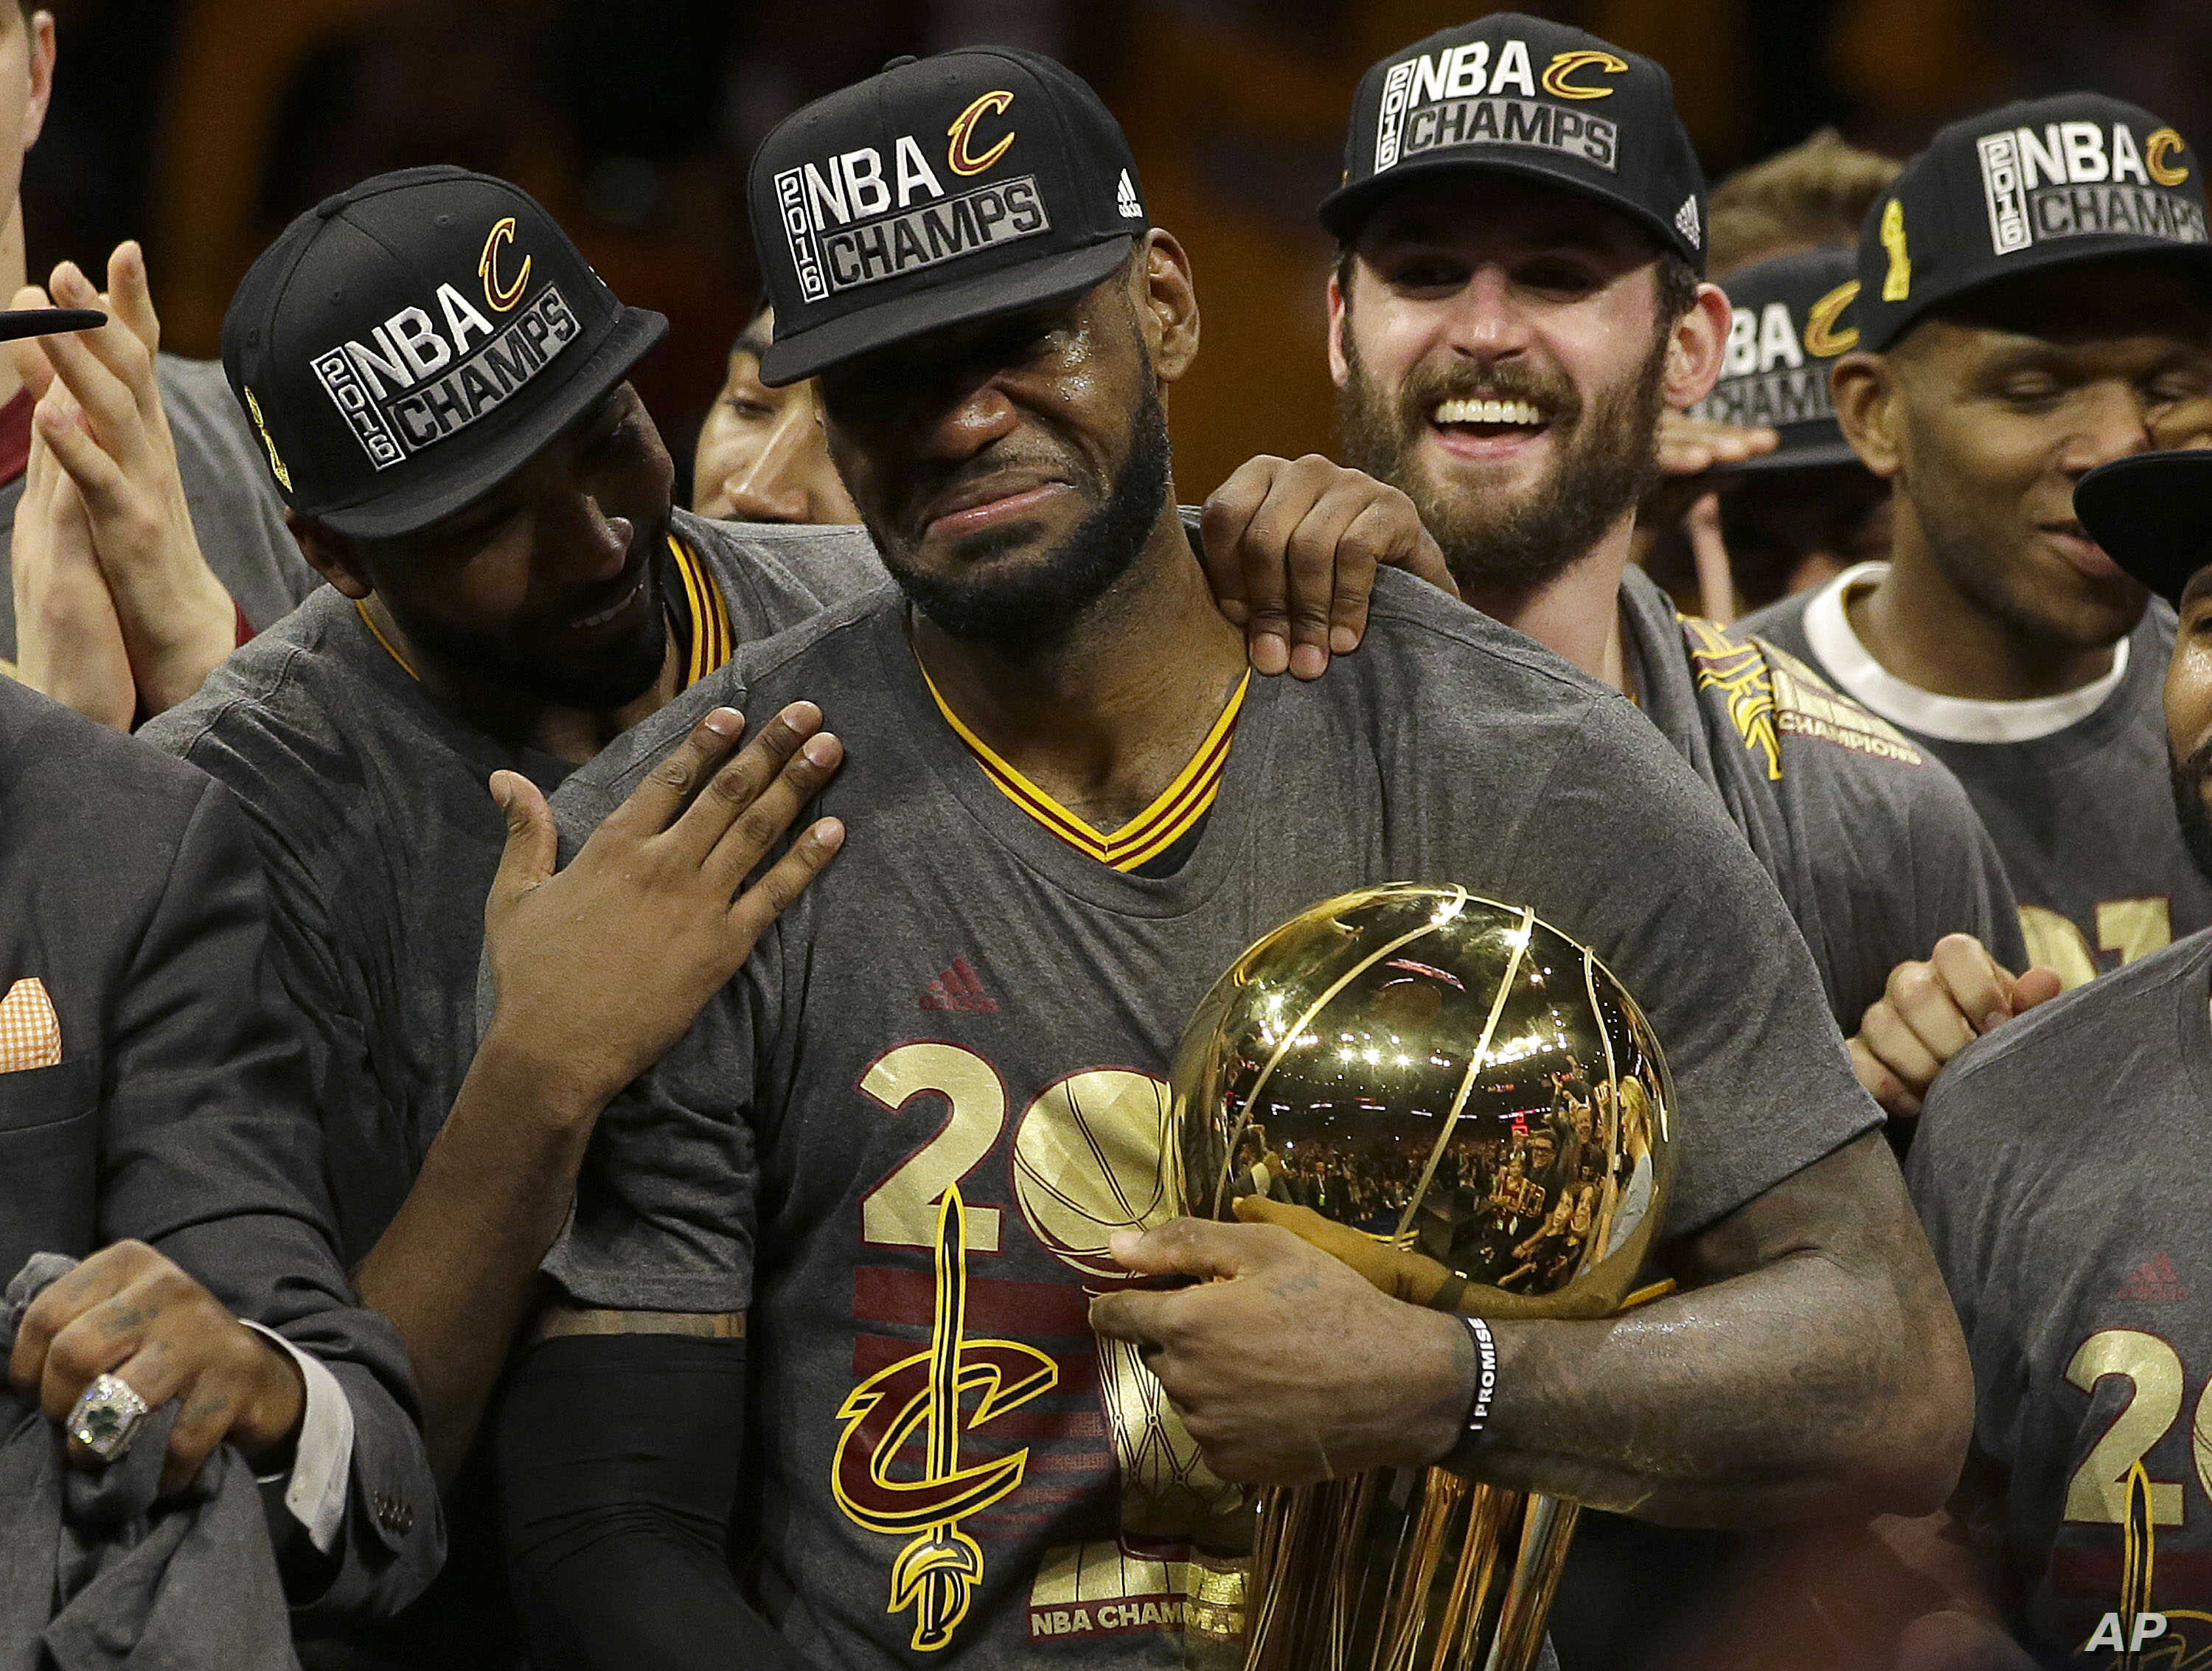 edb609e005304e Cleveland Cavaliers forward LeBron James, center, celebrates with teammates  after Game 7 of basketball's NBA Finals against the Golden State Warriors  in ...